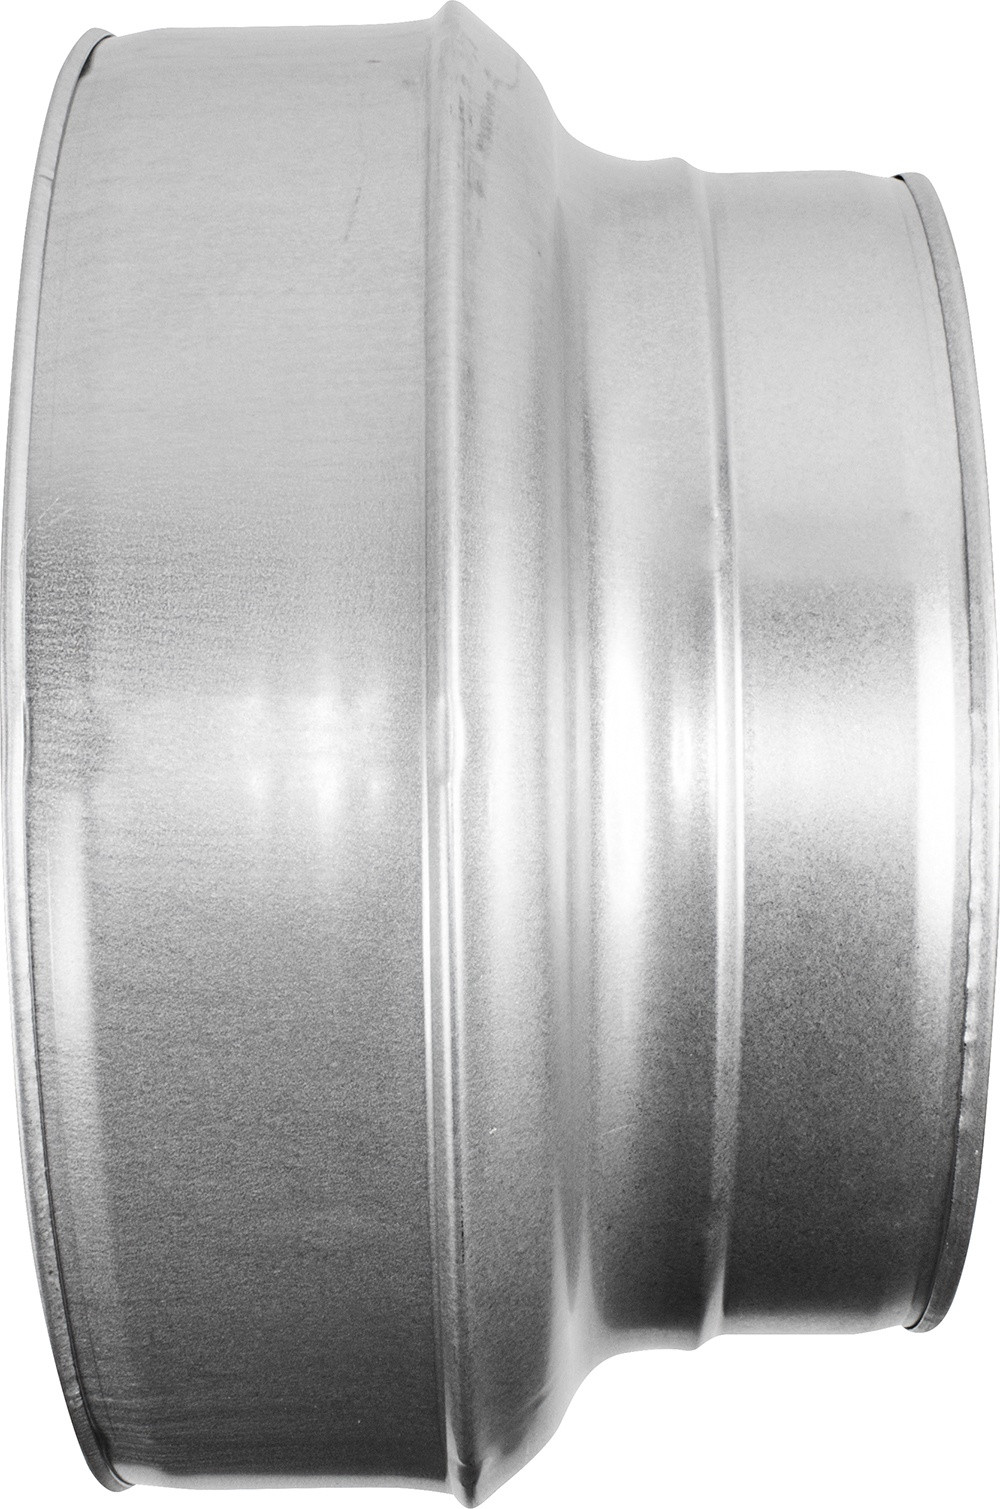 DUCTING REDUCER 200mm-250mm